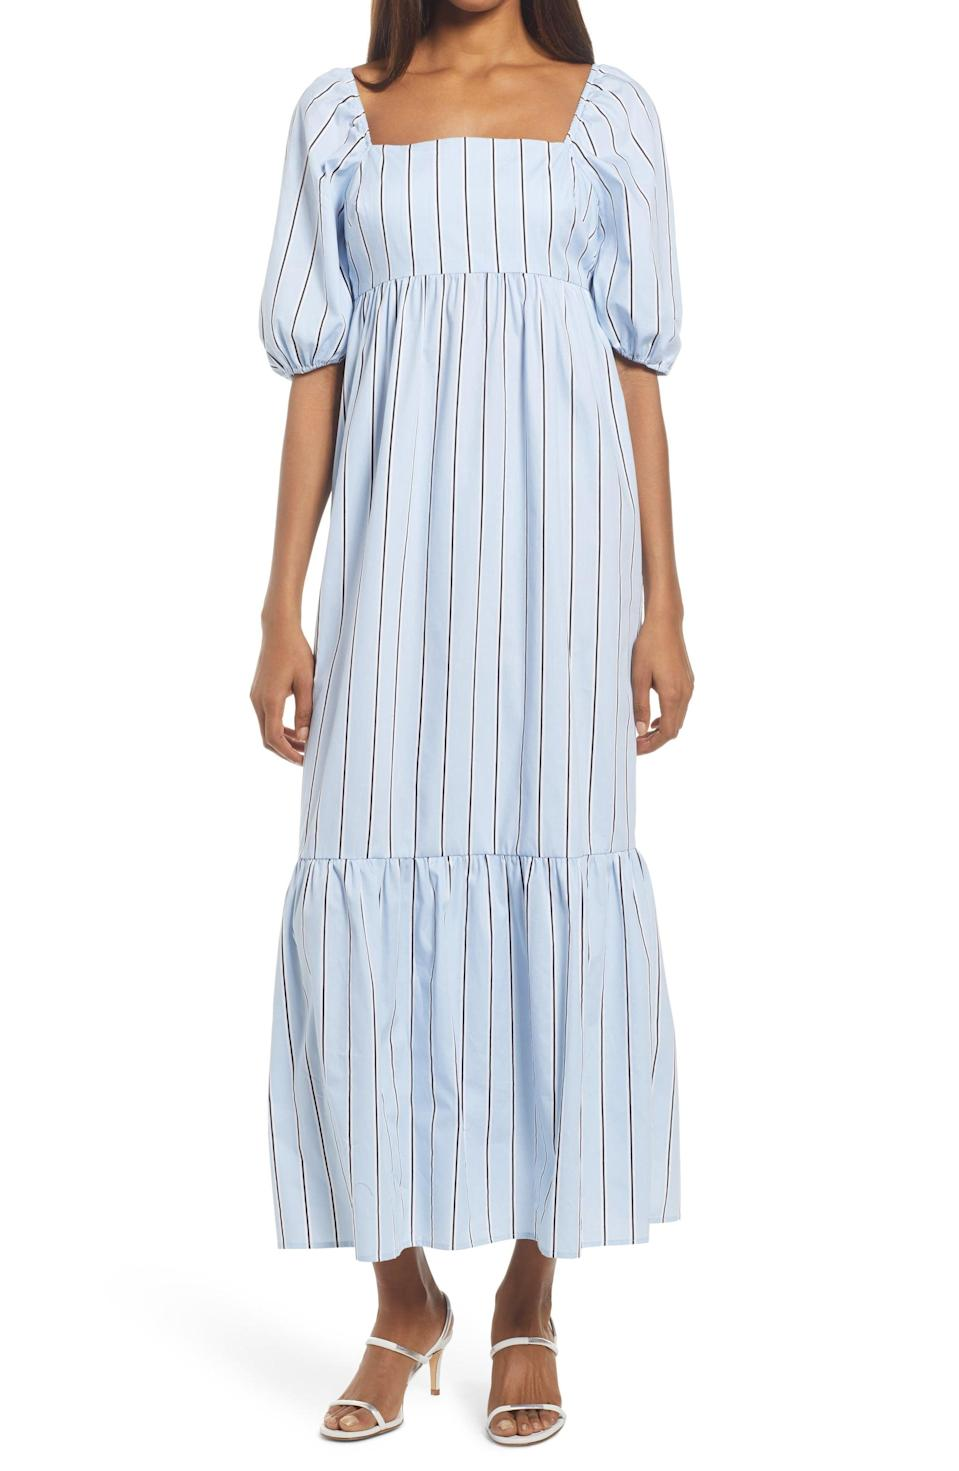 <p>This <span>Fourteenth Place Stripe Puff Sleeve Midi Dress</span> ($69) looks chic and breathable.</p>